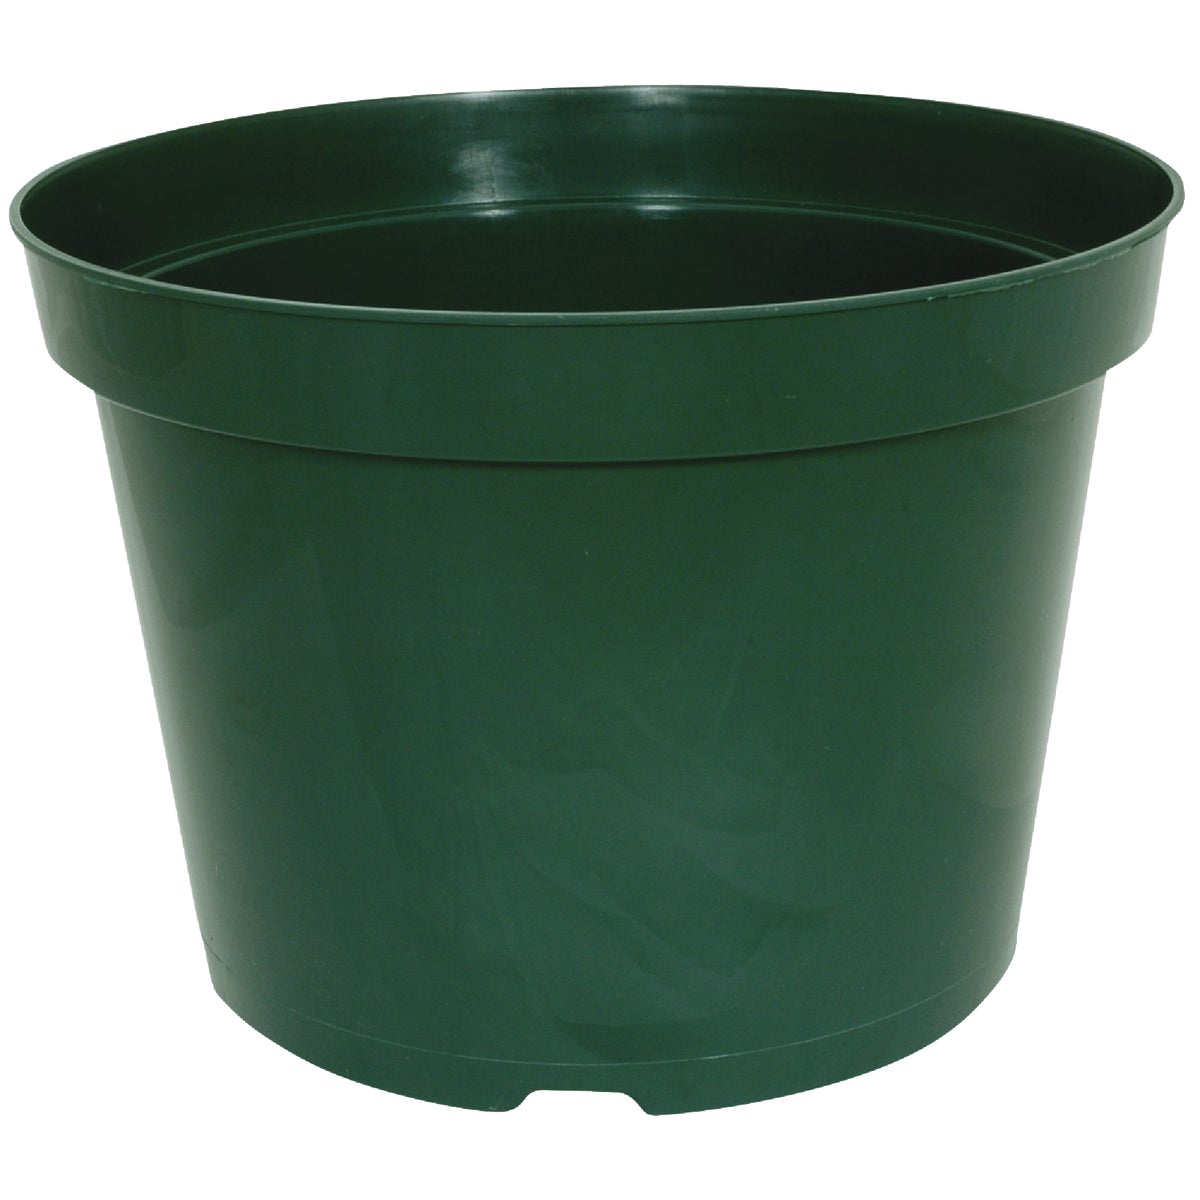 "6"" GREEN GROWER POT - AZE0600B71 by Myers Industries Inc"